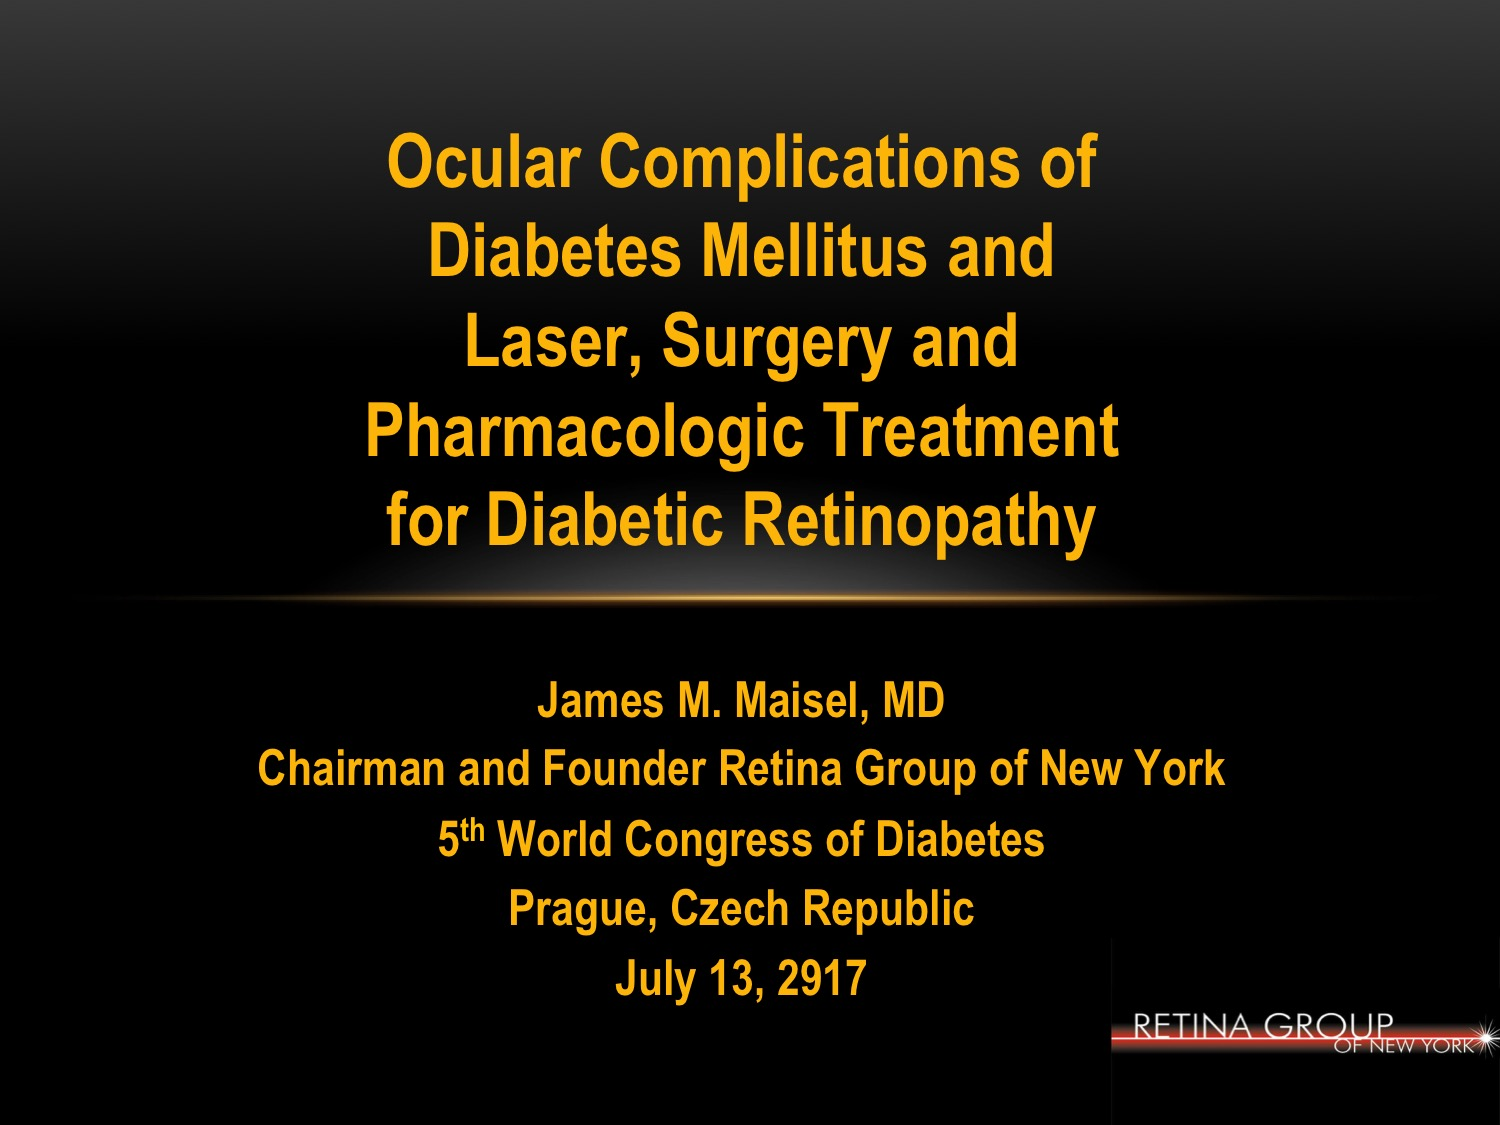 ZyDoc Chairman James M. Maisel, MD Chairs the Epidemiology and Prevention of Diabetes Section at the 5th World Congress of Diabetes 2017 in Prague, Czech Republic